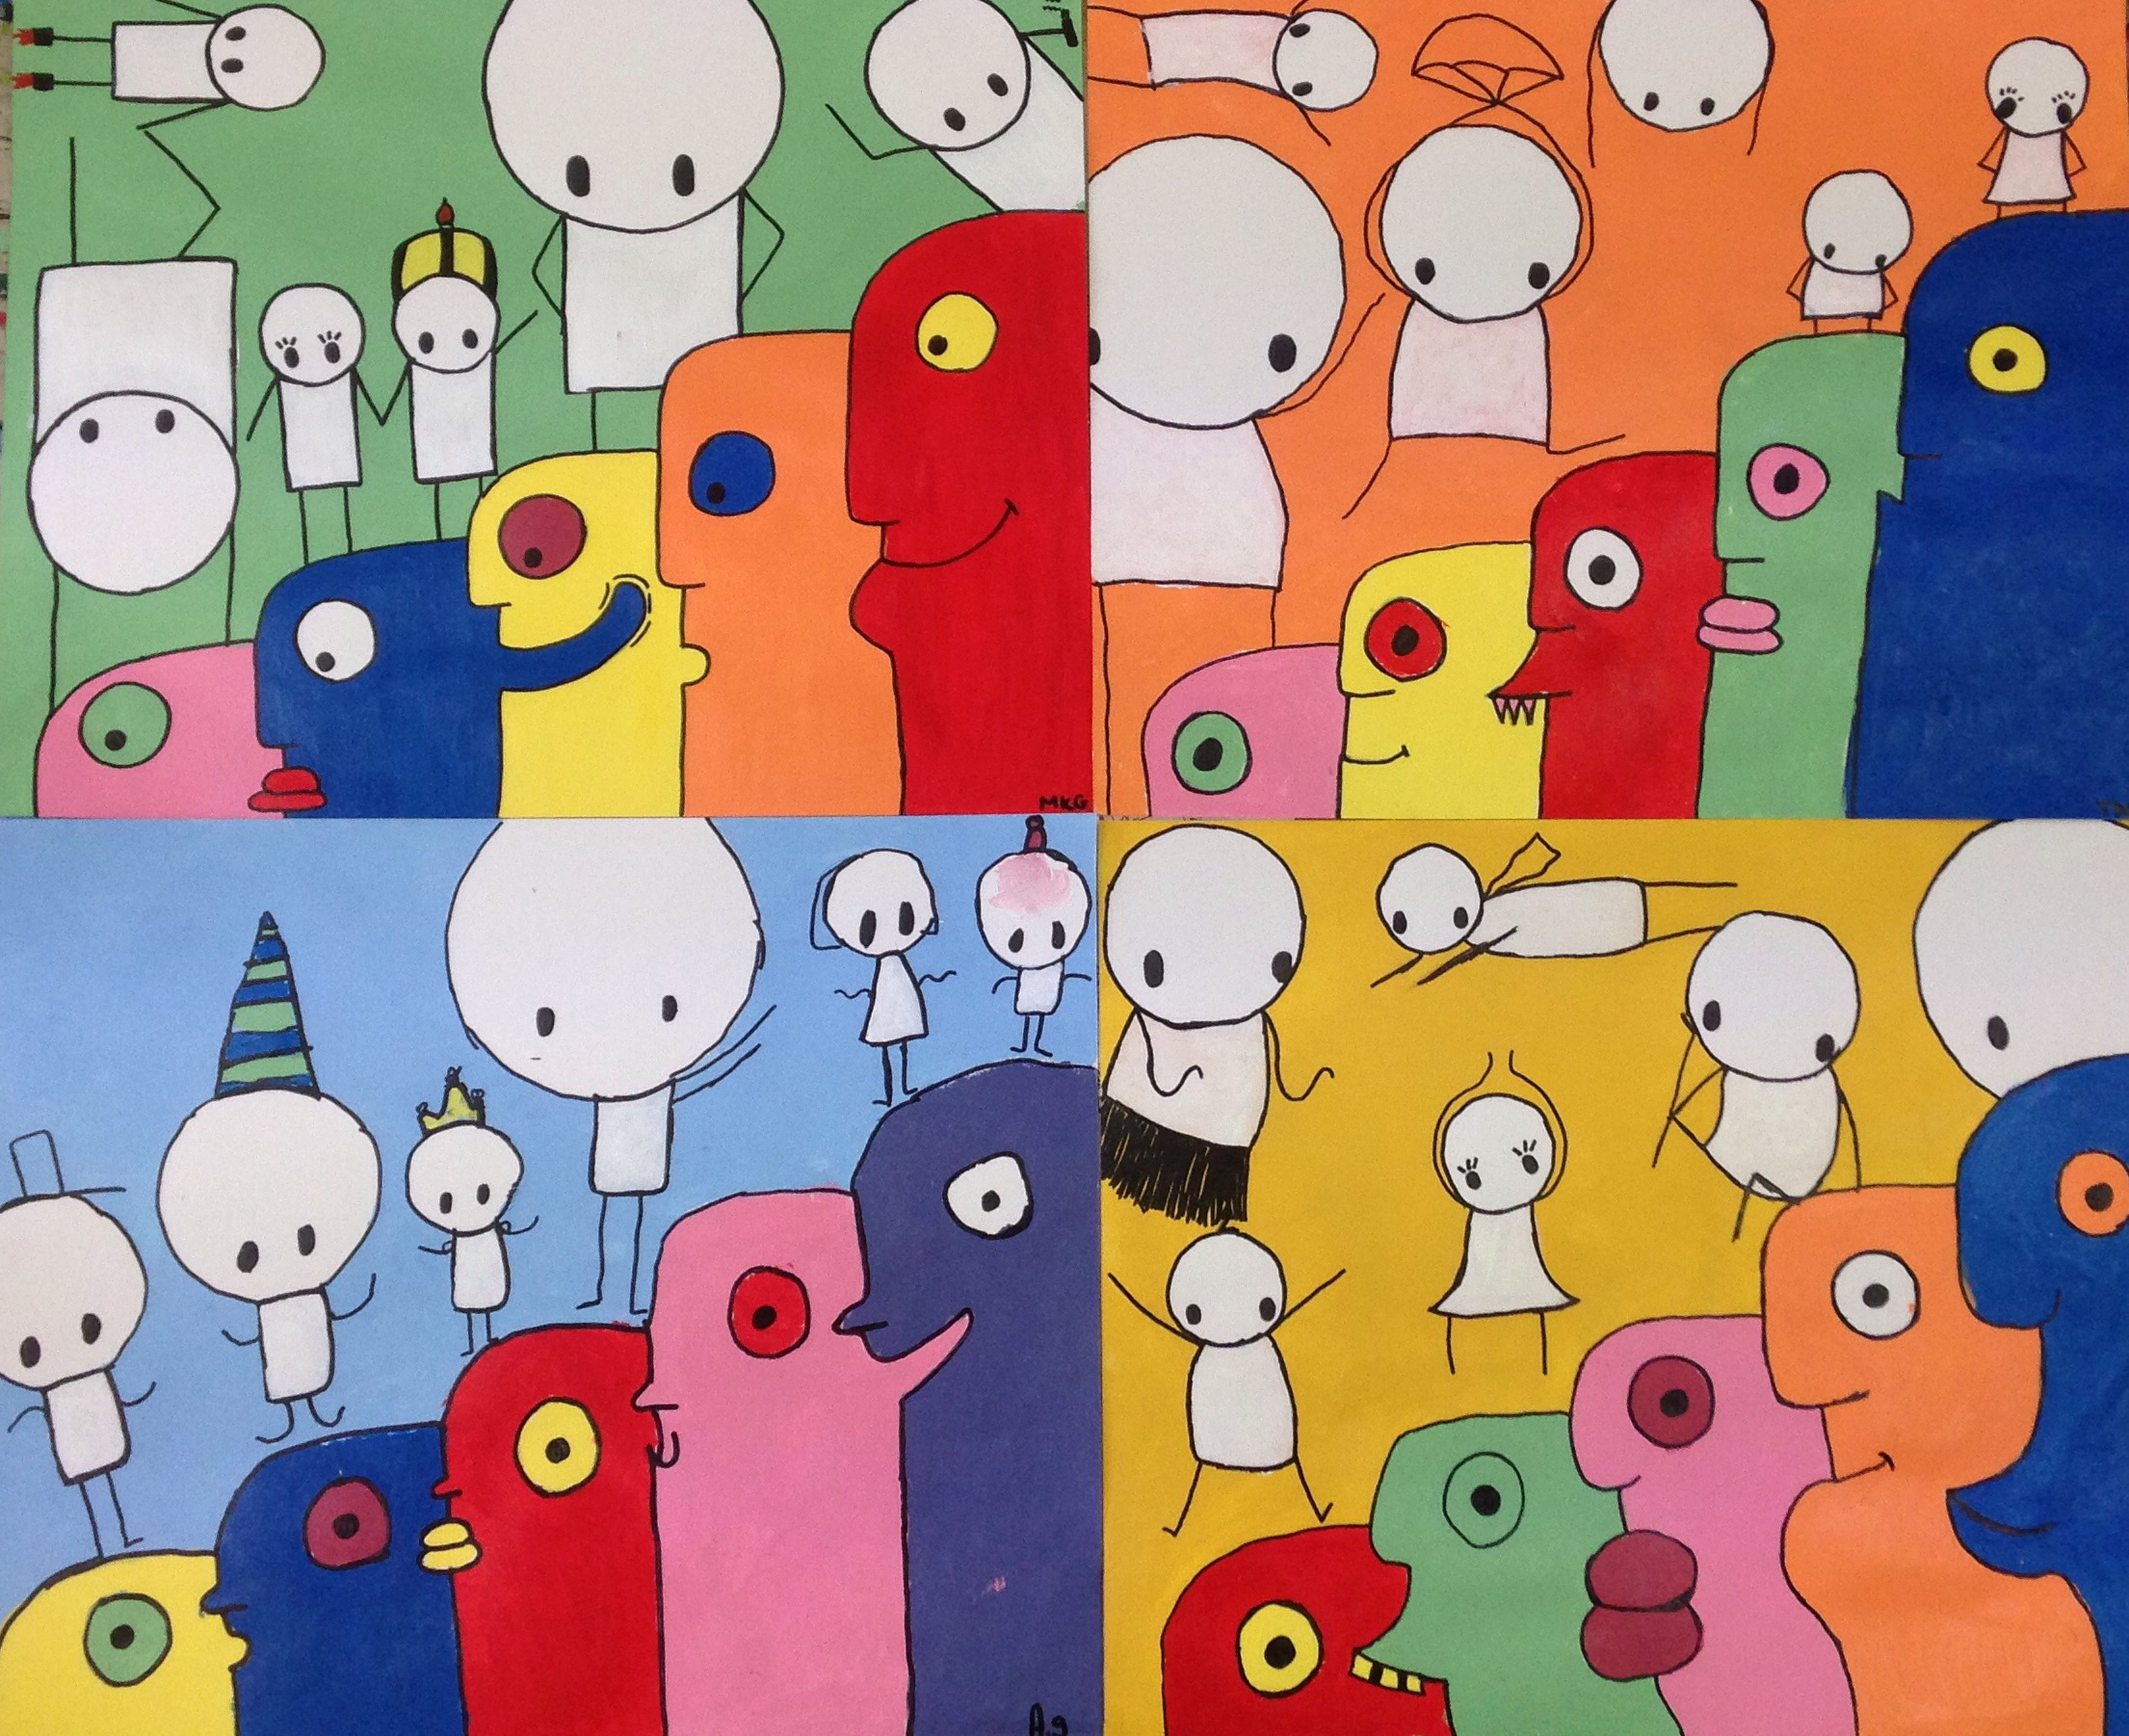 #stik graffiti with #thierrynoir faces. Ages 6 - 12 Acrylic